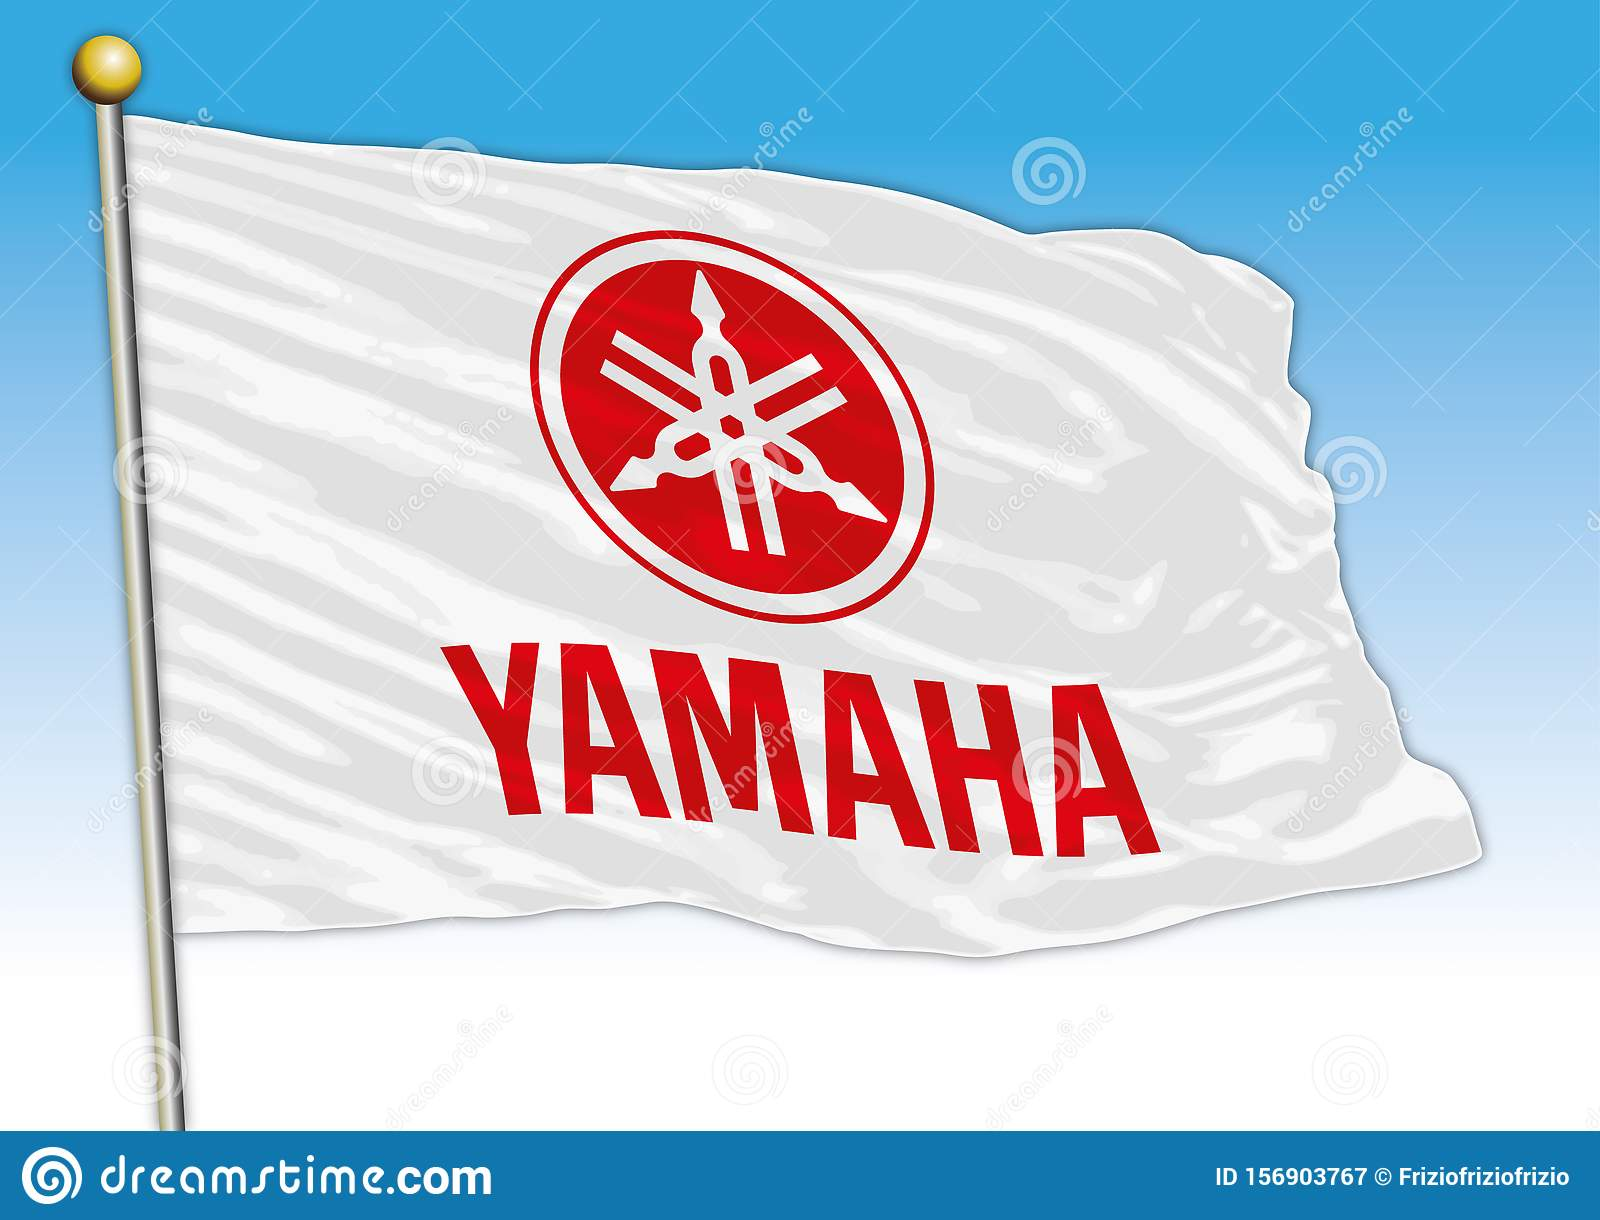 yamaha stock illustrations 60 yamaha stock illustrations vectors clipart dreamstime https www dreamstime com yamaha motorcycles international group flags logo illustration vector image156903767